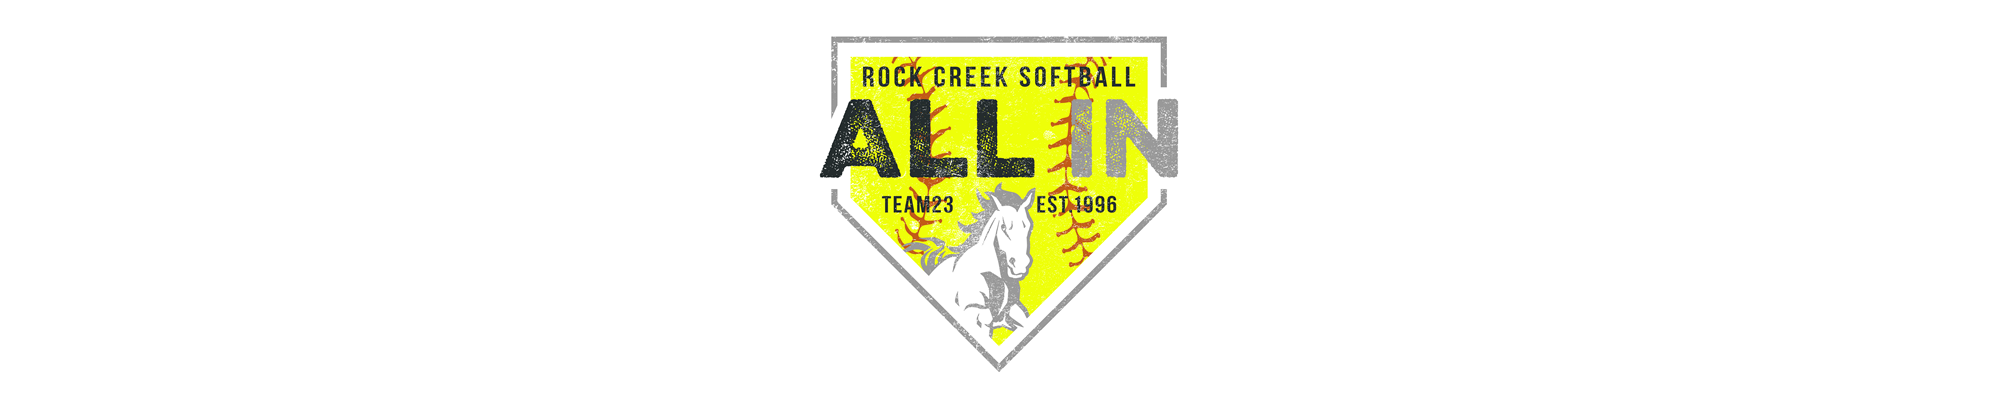 Rock Creek Softball